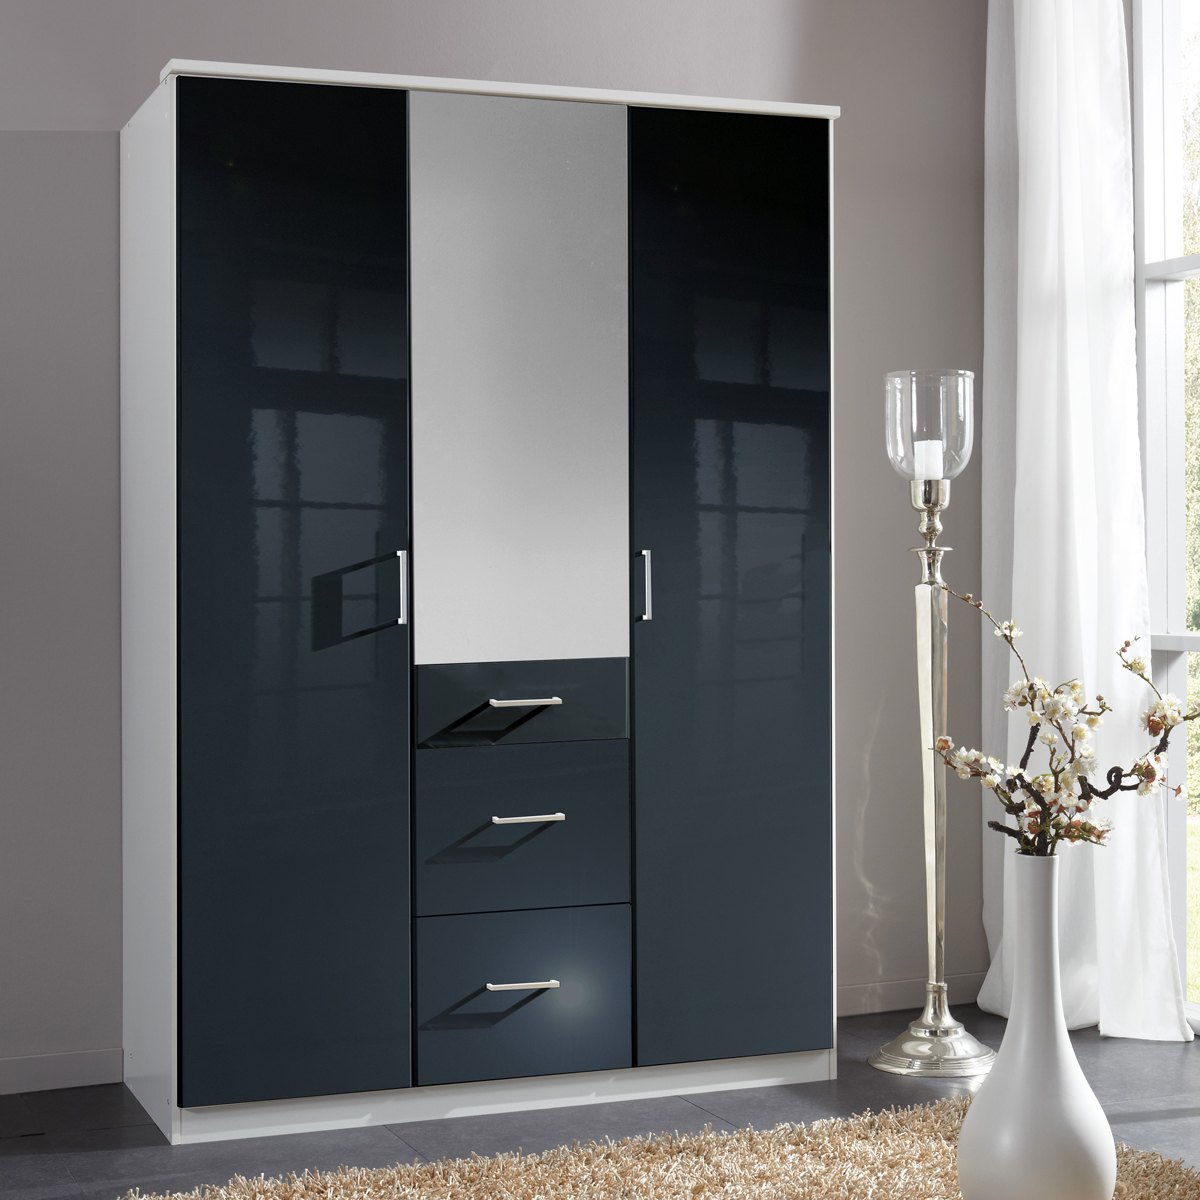 kleiderschrank clack dreht renschrank hochglanz schwarz alpinwei spiegel 135 cm ebay. Black Bedroom Furniture Sets. Home Design Ideas